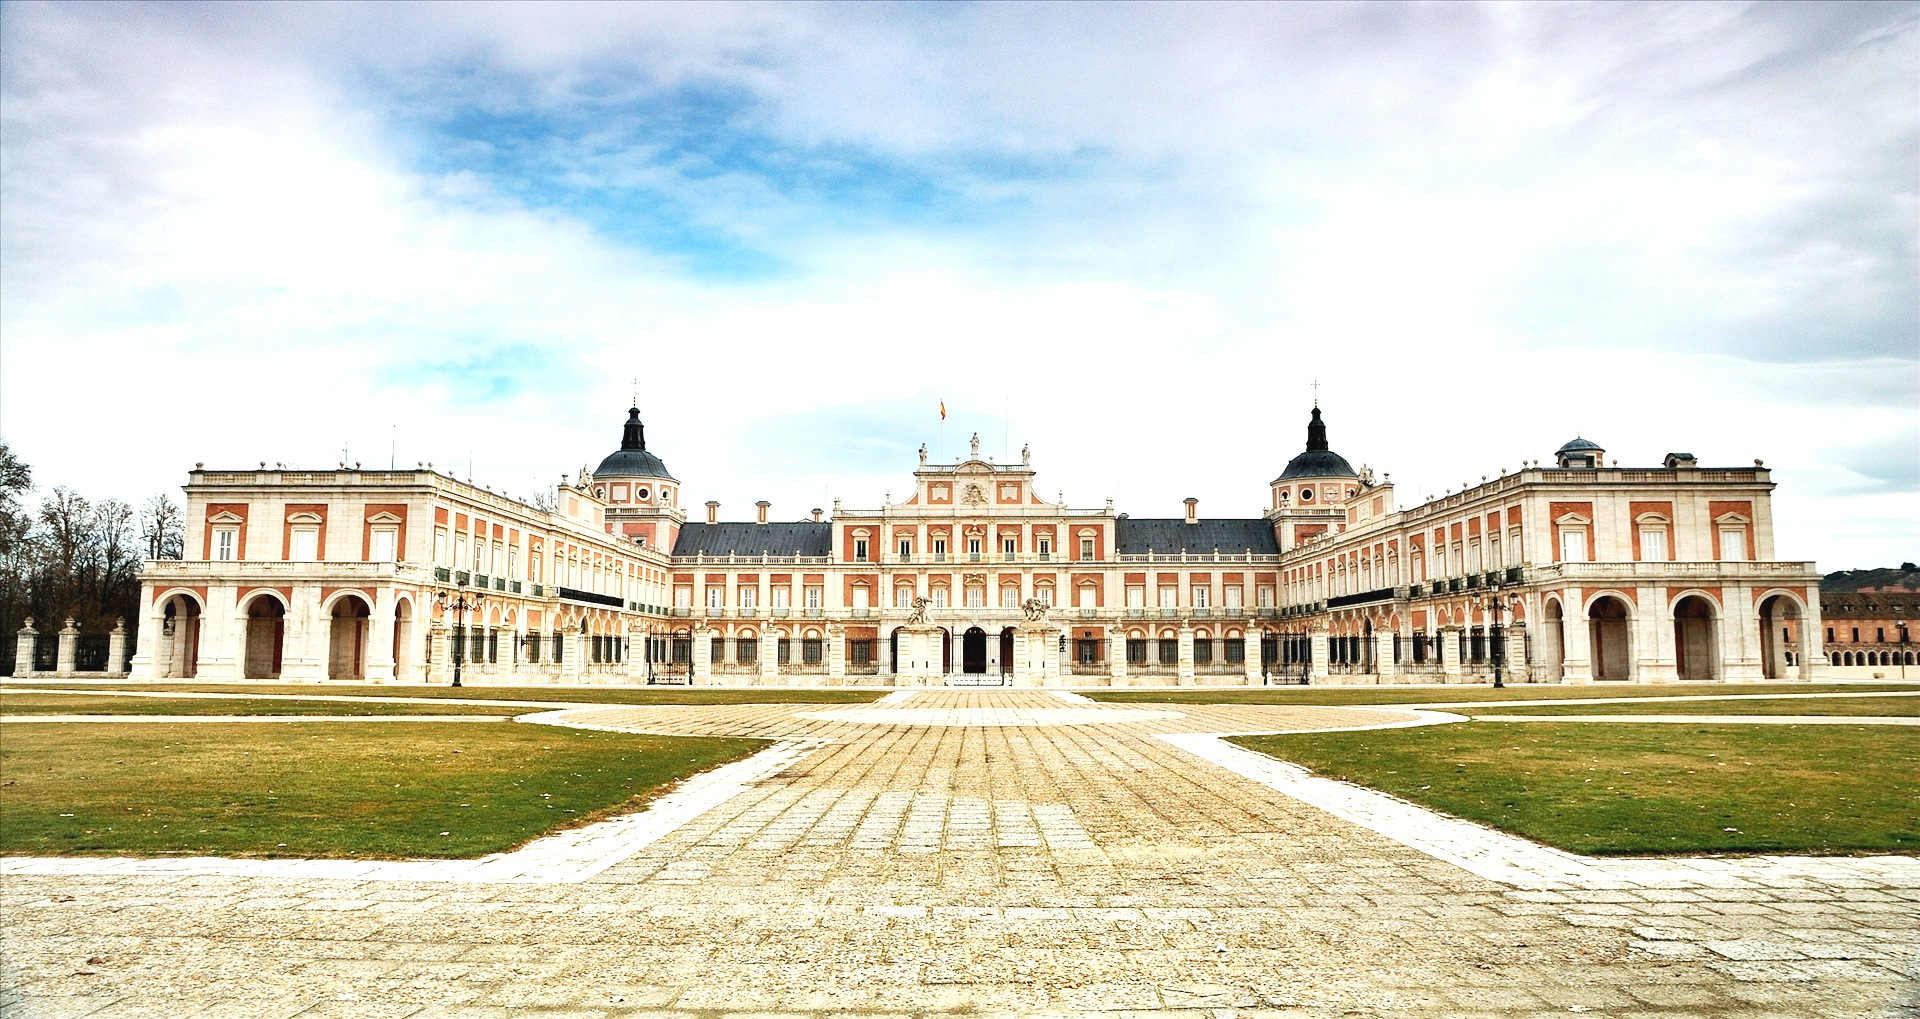 Images of Royal Palace Of Aranjuez | 1920x1019